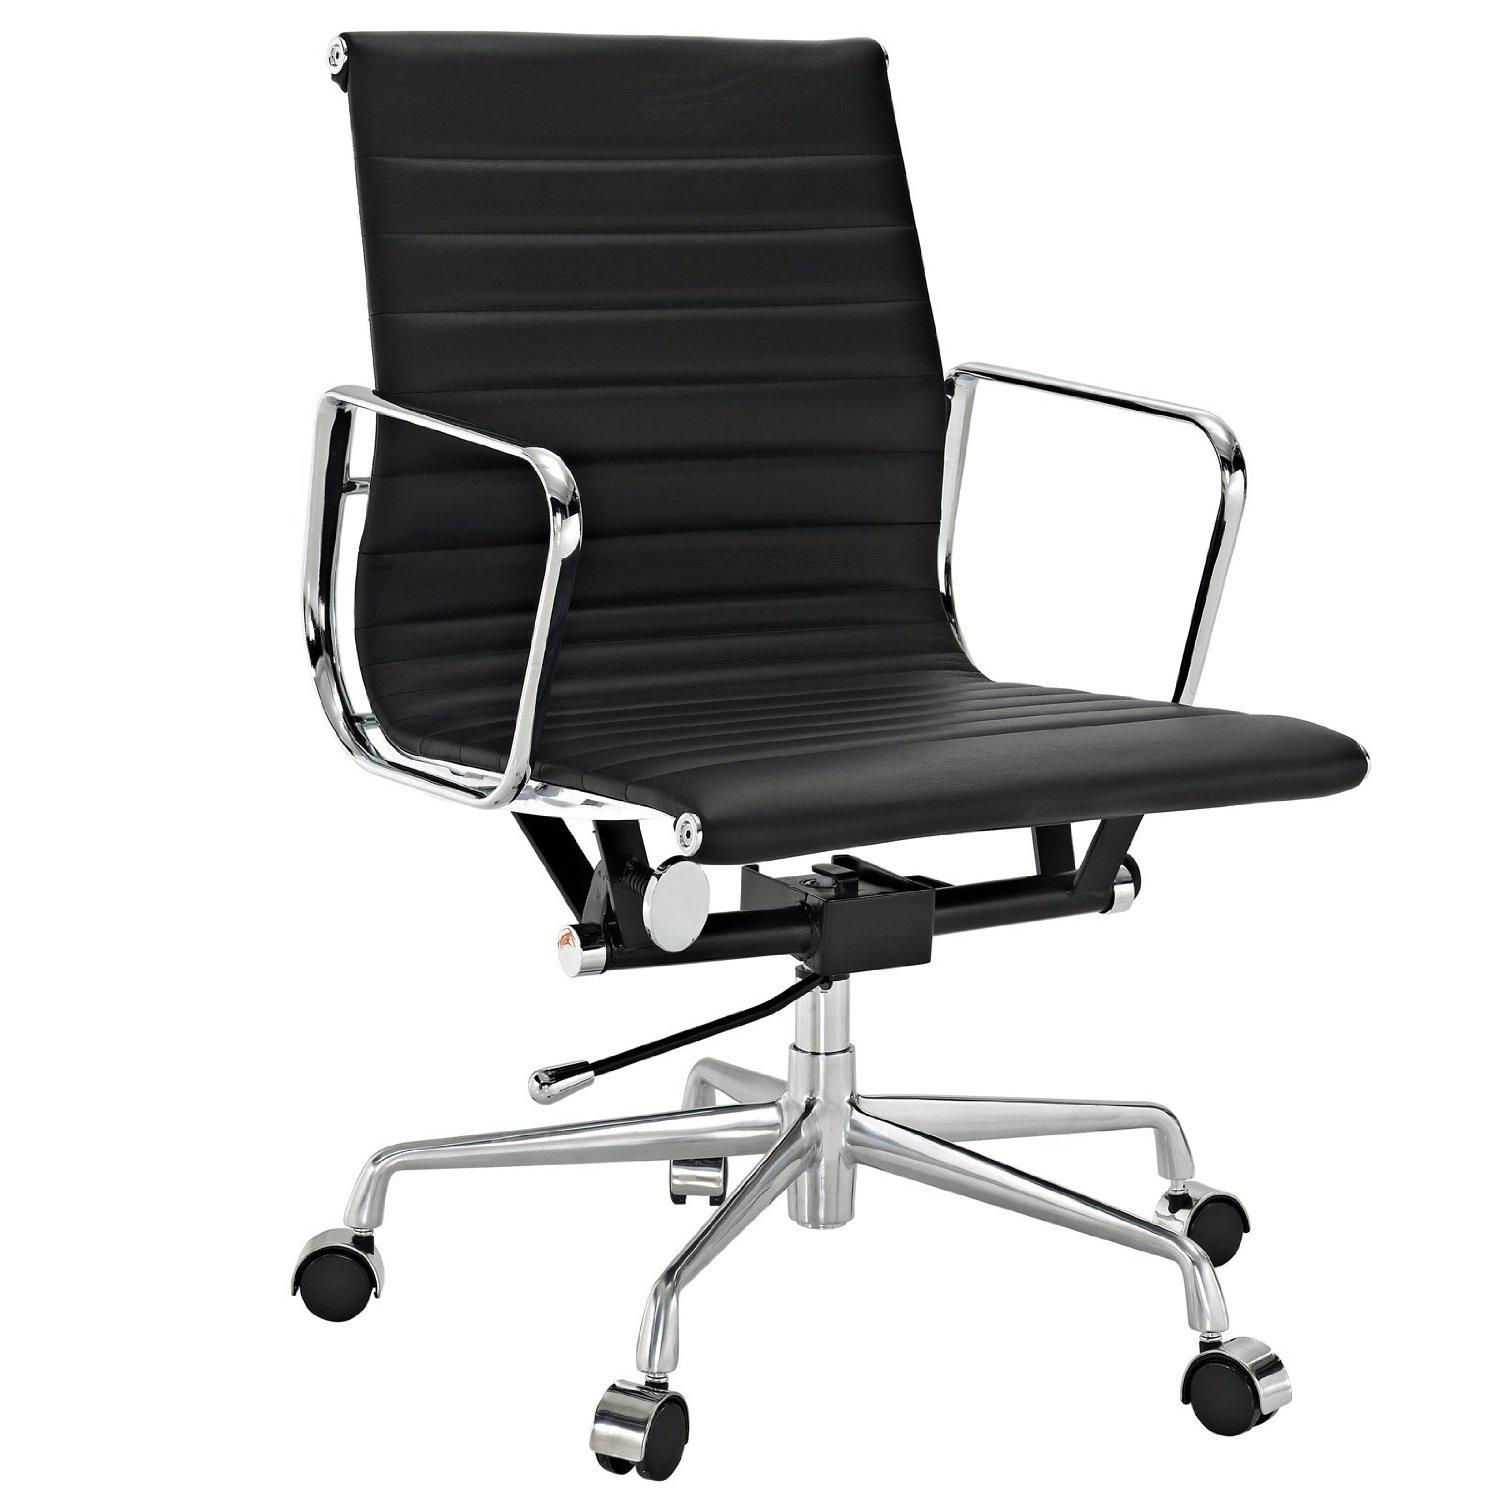 Amazon Computer Chairs Amazon.com: Ribbed Mid Back Office Chair in Black Genuine Leather ...